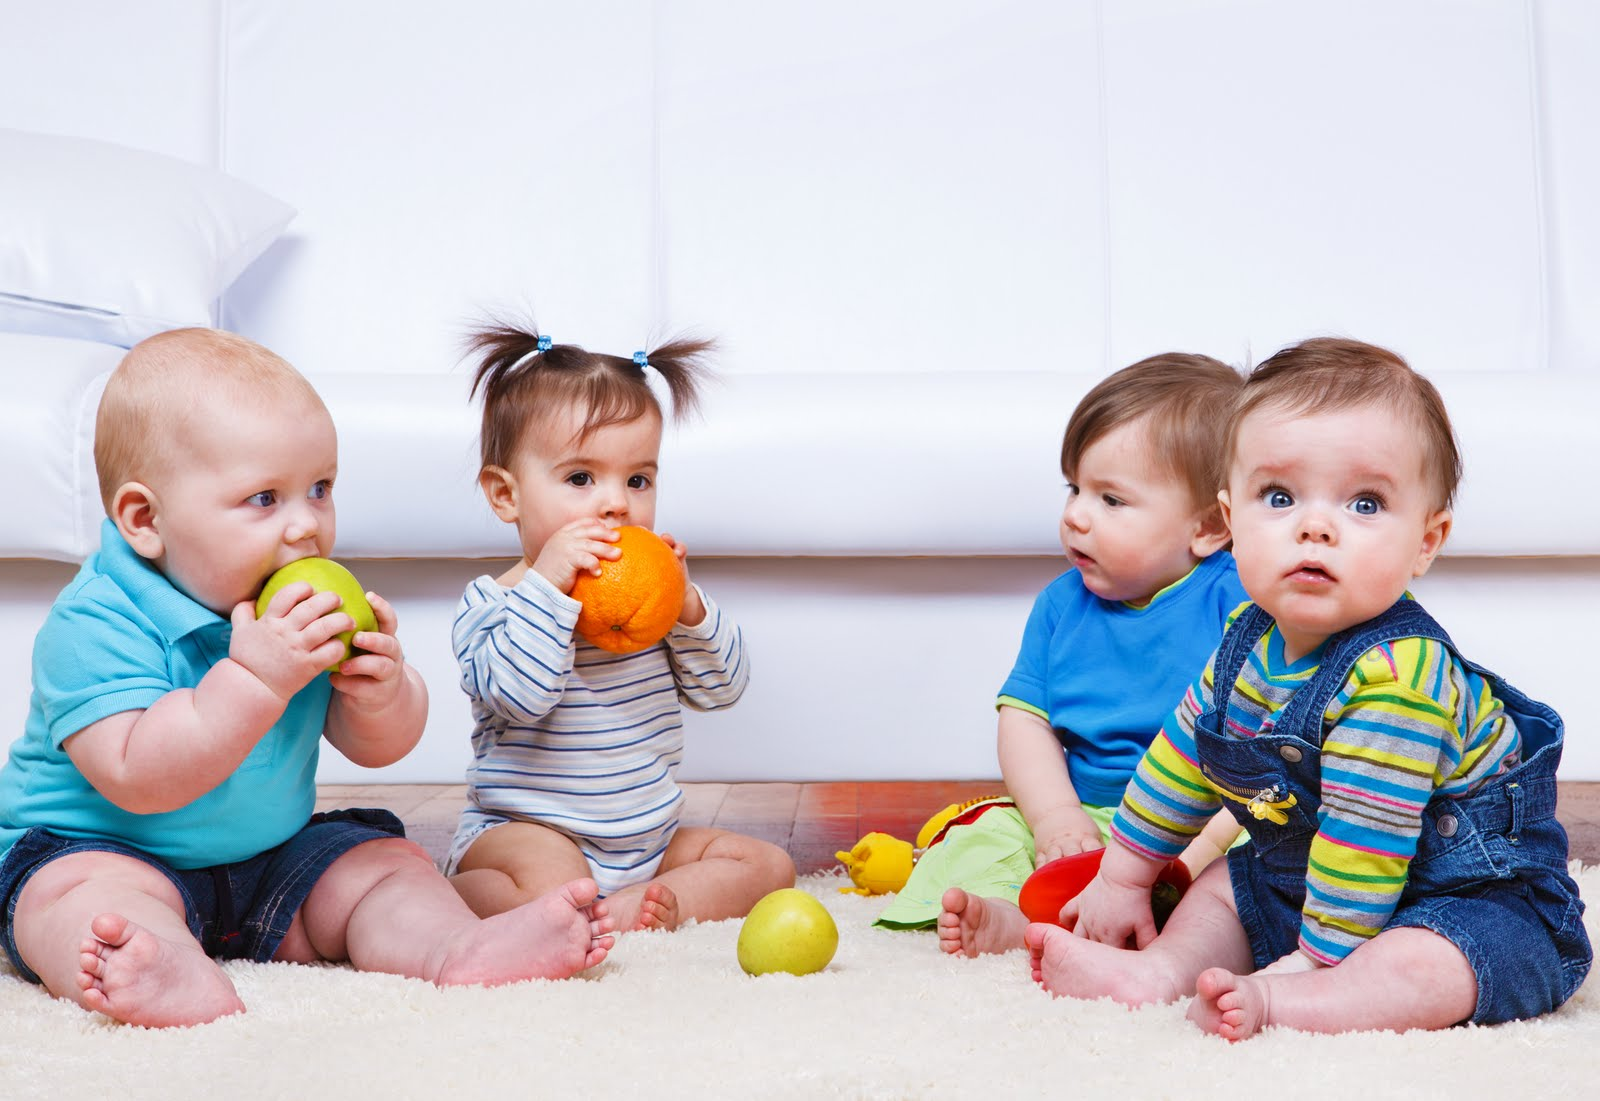 Group Of Babies Playing